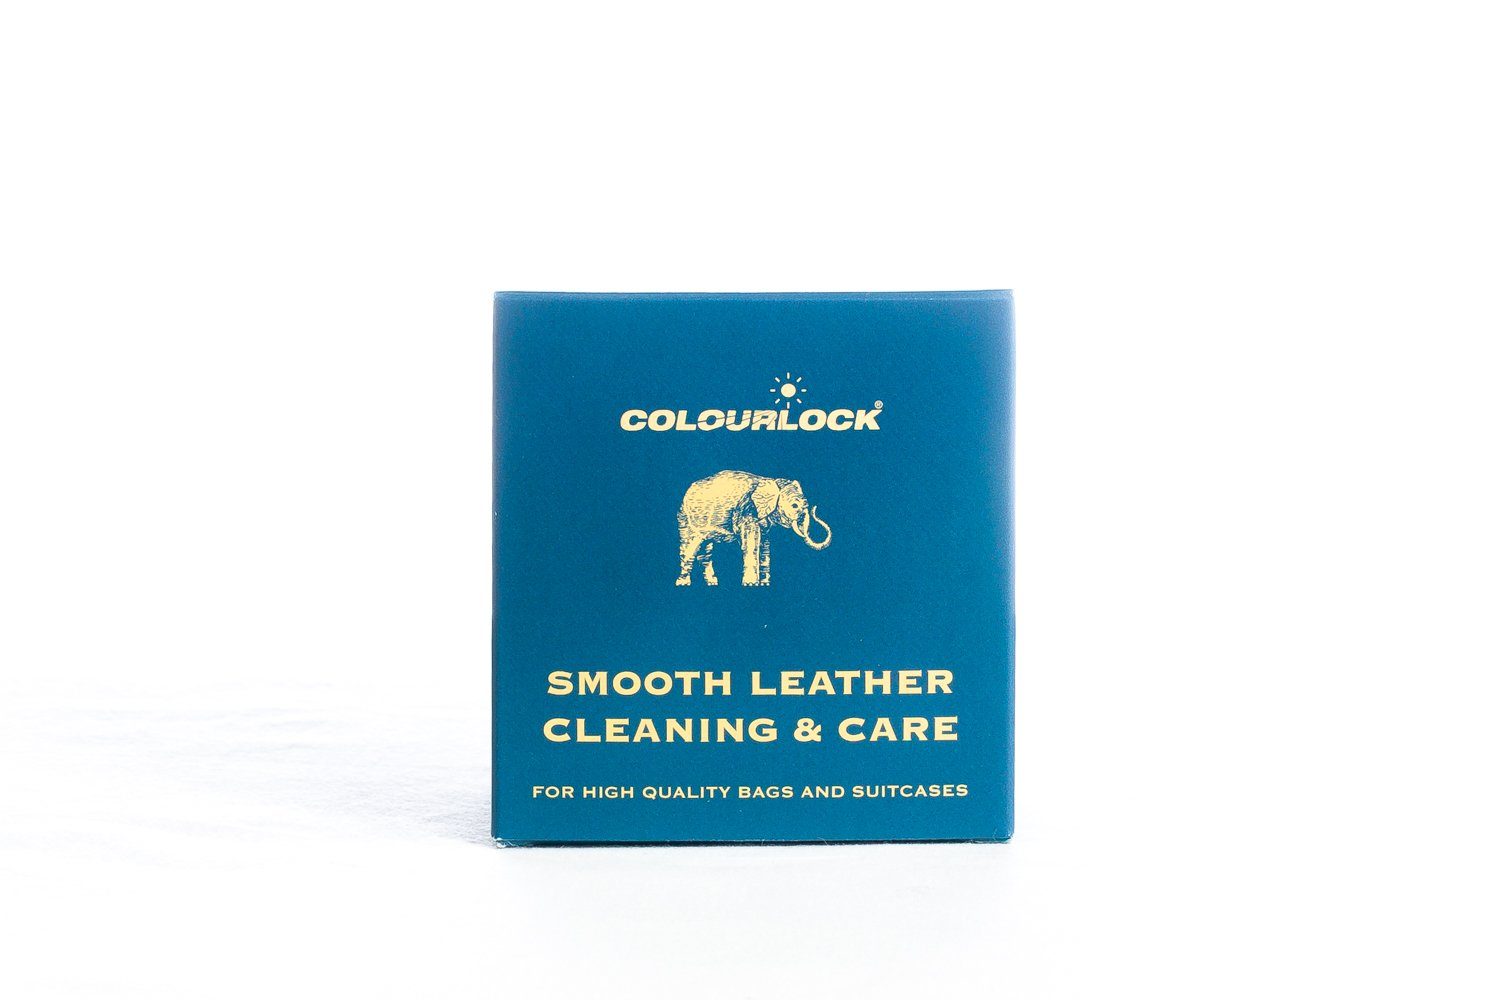 Colourlock Leather Handbag Cleaner & Polishing kit - Ideal kit to Clean, Polish and Protect Bags by Colourlock (Image #3)